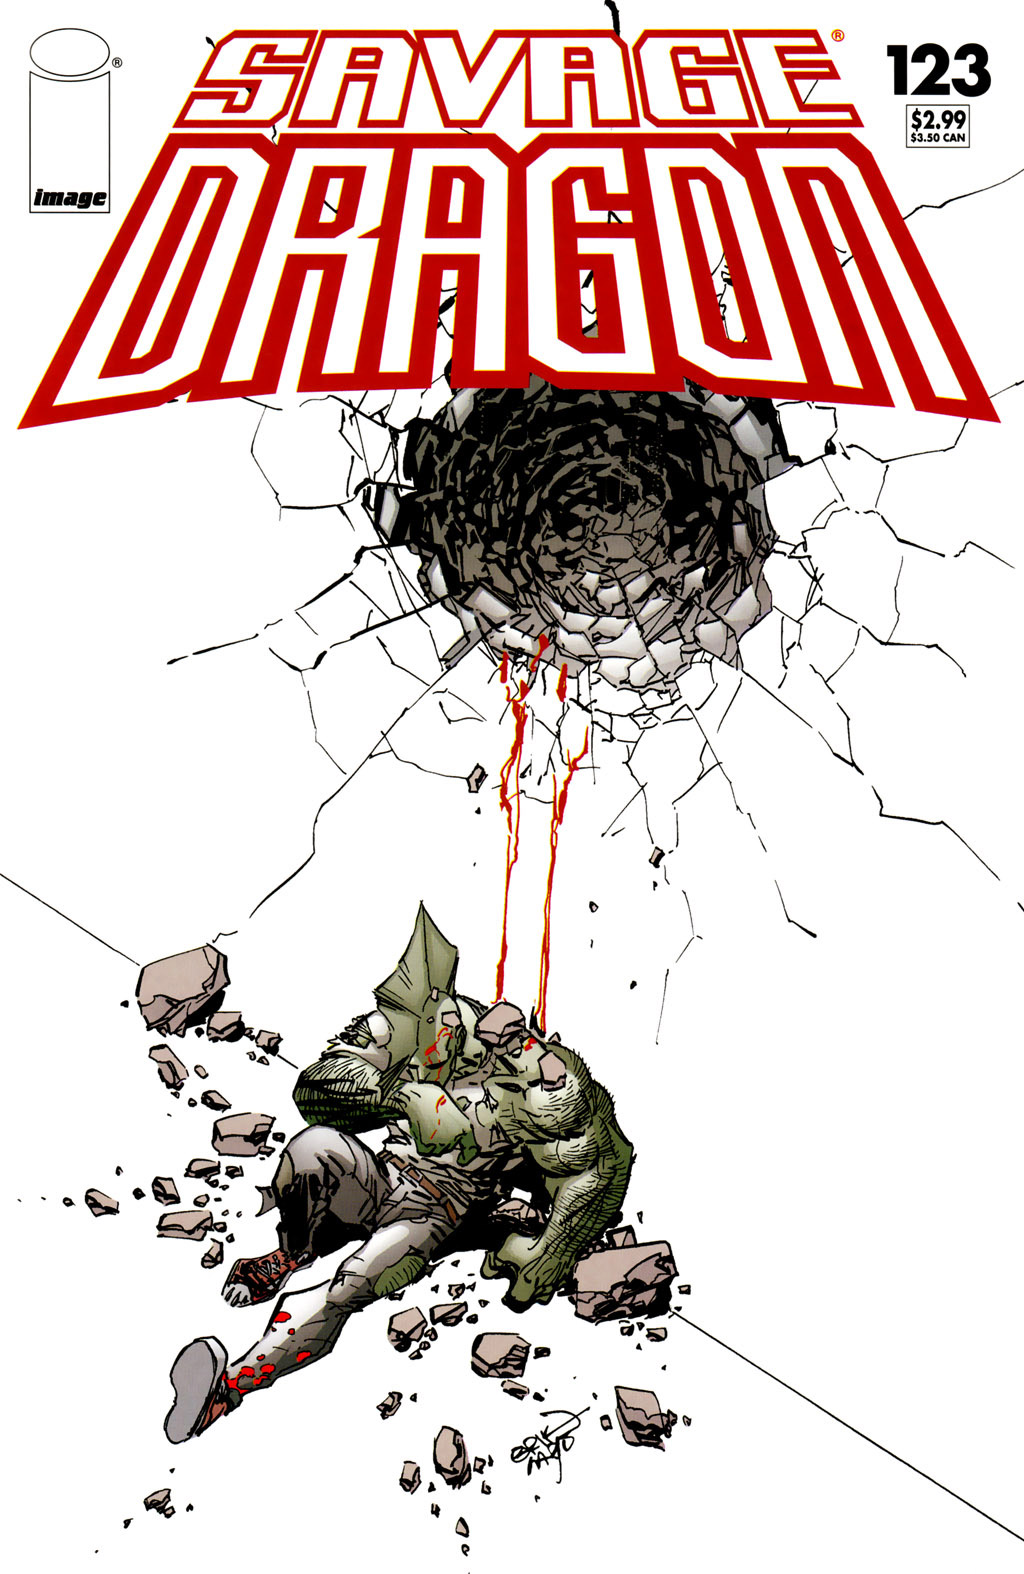 Cover Savage Dragon Vol.2 #123